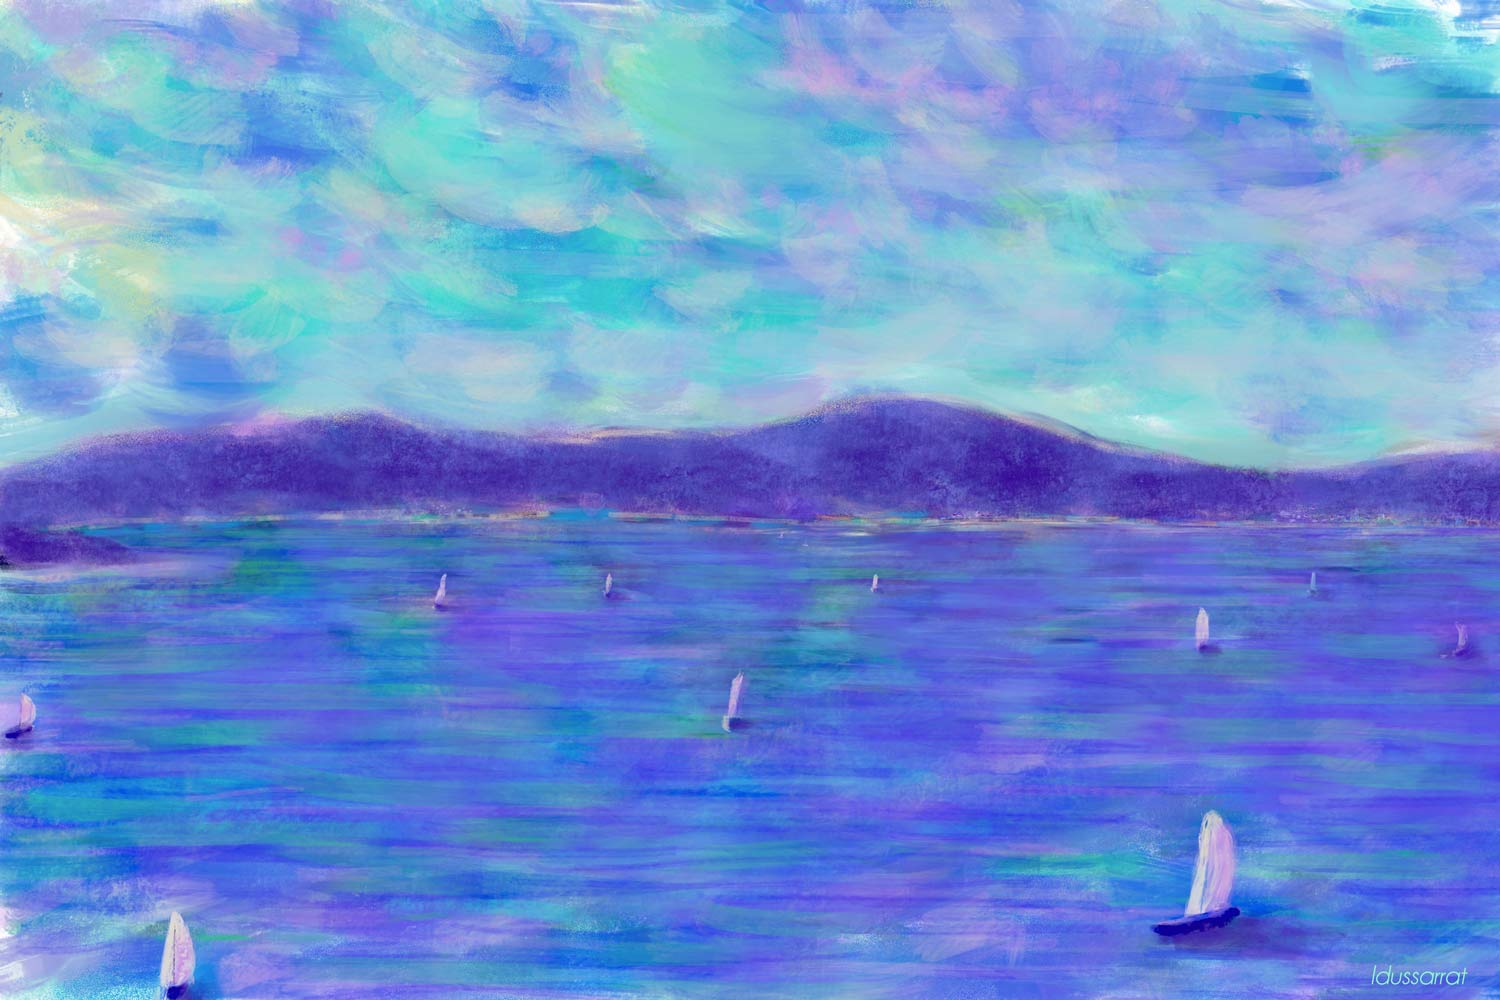 Lake Geneva, from Thonon-les-Bains. Digital painting, 38x57, 2018